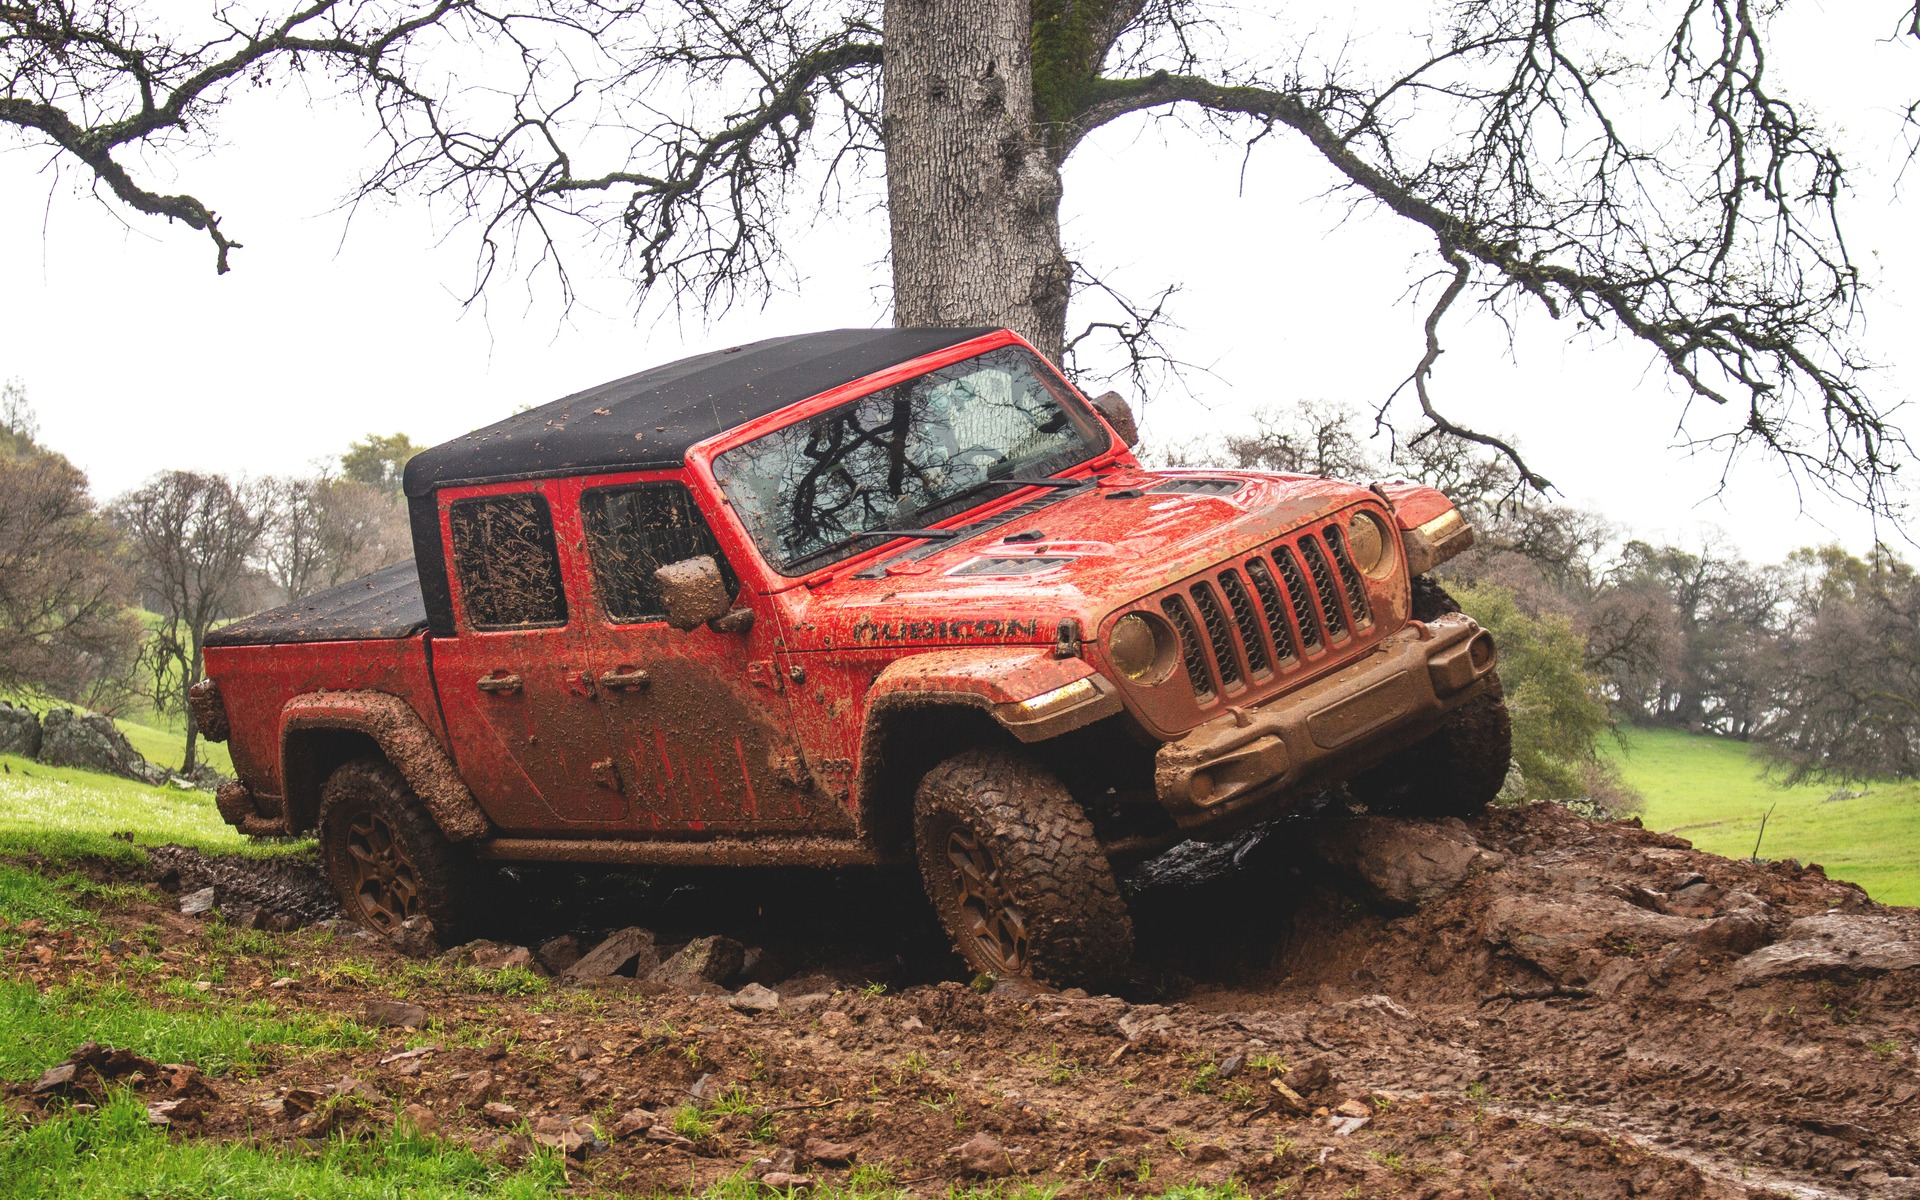 2020 Jeep Gladiator An Adorable And Capable Toy The Car Guide